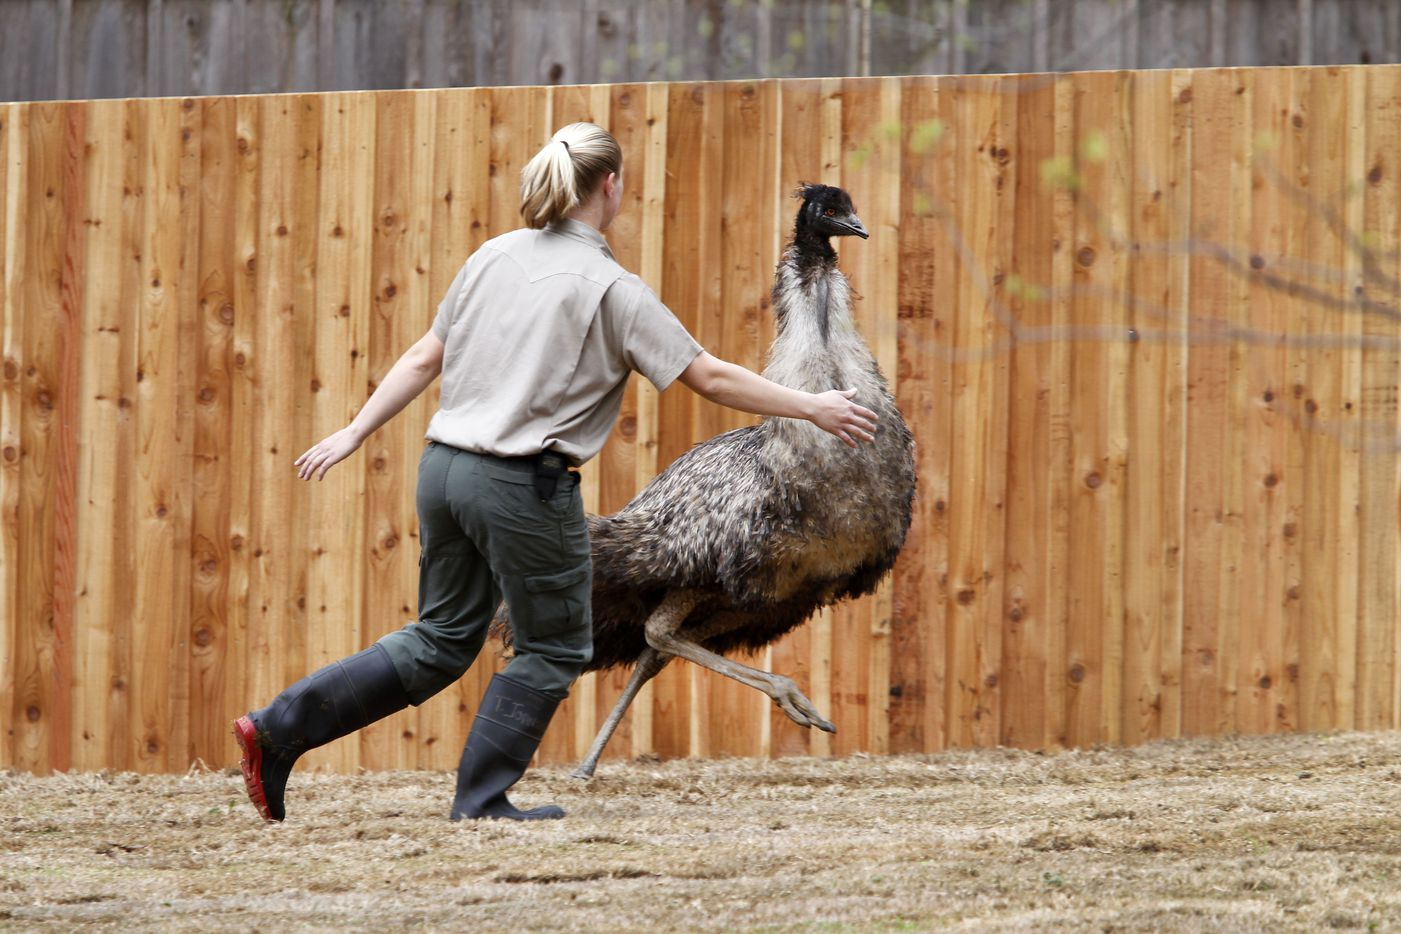 Zookeeper Ashley Orr tries to corral an emu in the Koala Walkabout exhibit which opened March 2012 at the Dallas Zoo